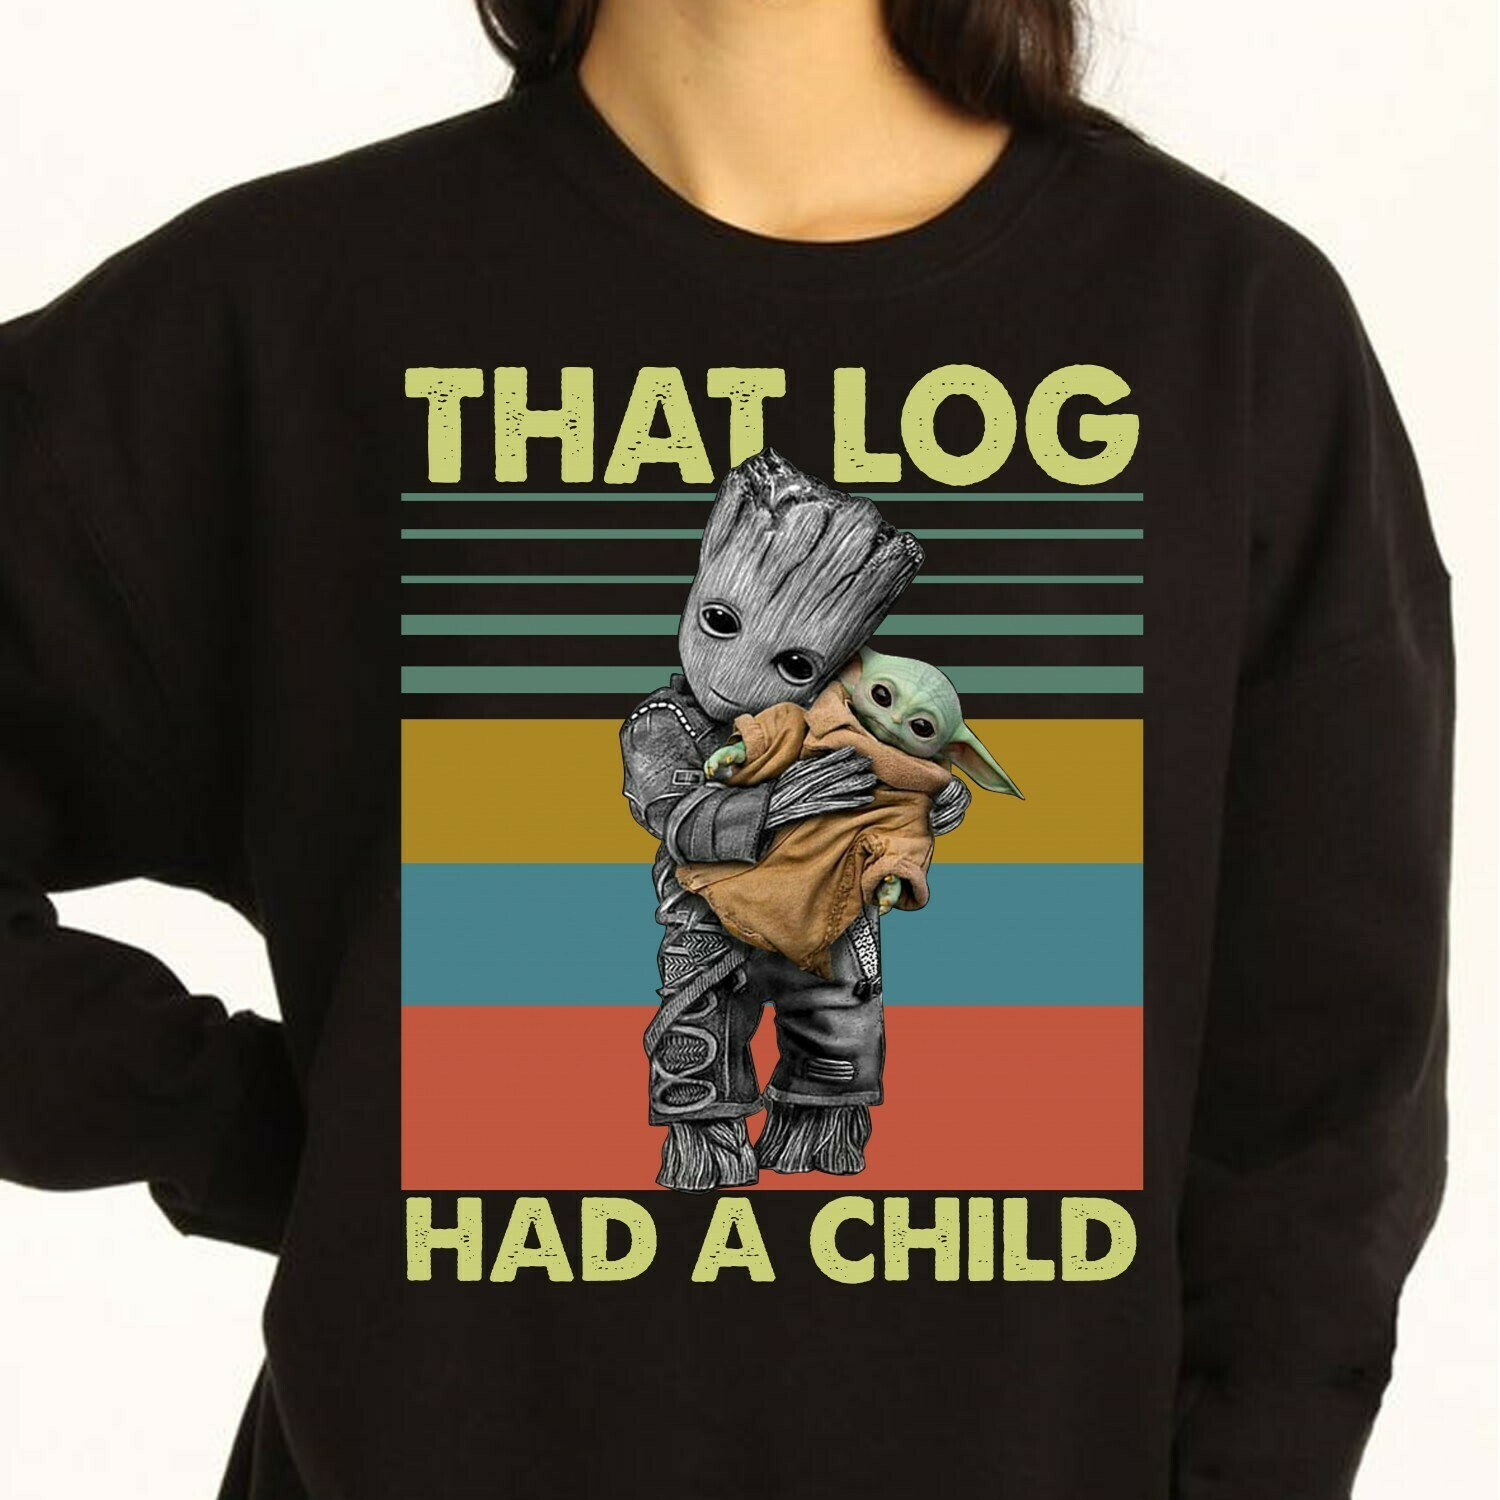 That Log Had A Child Groot mashup baby yoda shirt,star wars 2020 gifts,Funny Star Wars The Mandalorian The Child First Memories Floating Pod Long Sleeve Sweatshirt Hoodie Jolly Family Gifts